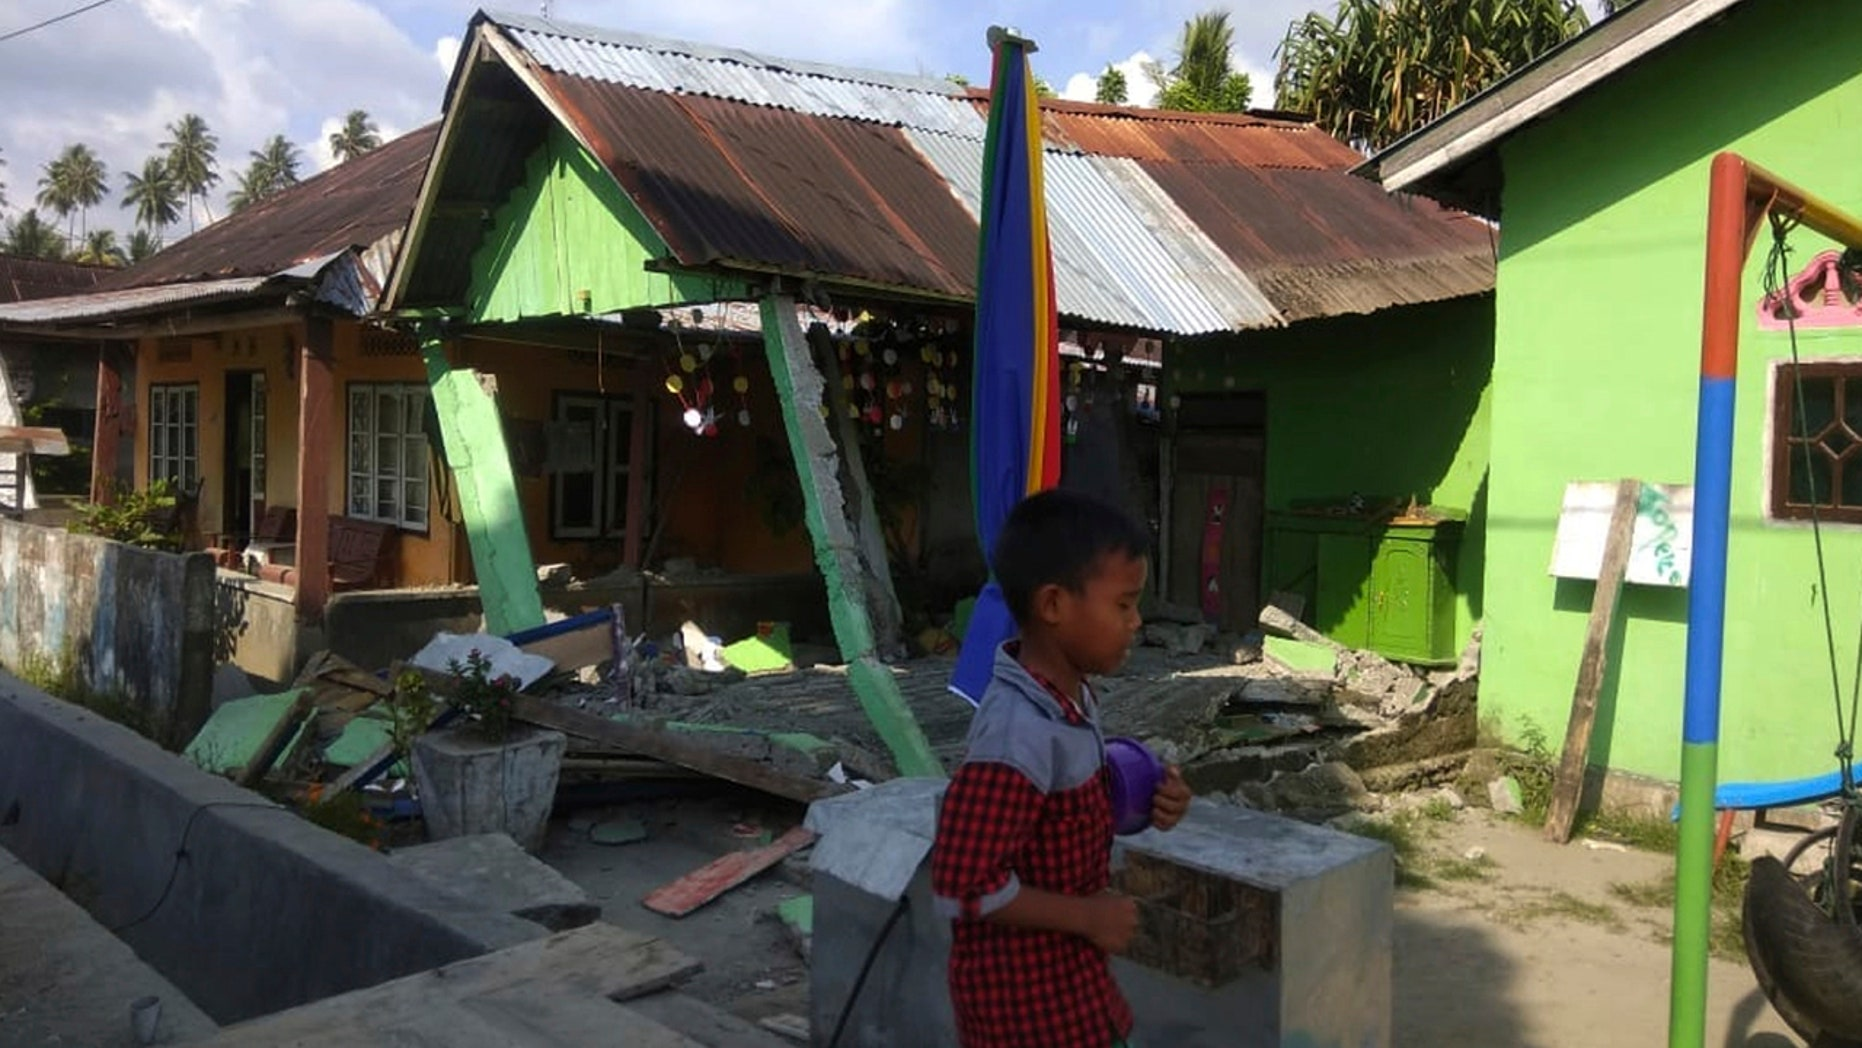 A photo from a 6.1-magnitude earthquake that hit Donggala, Indonesia hours before a 7.5 quake struck the region.